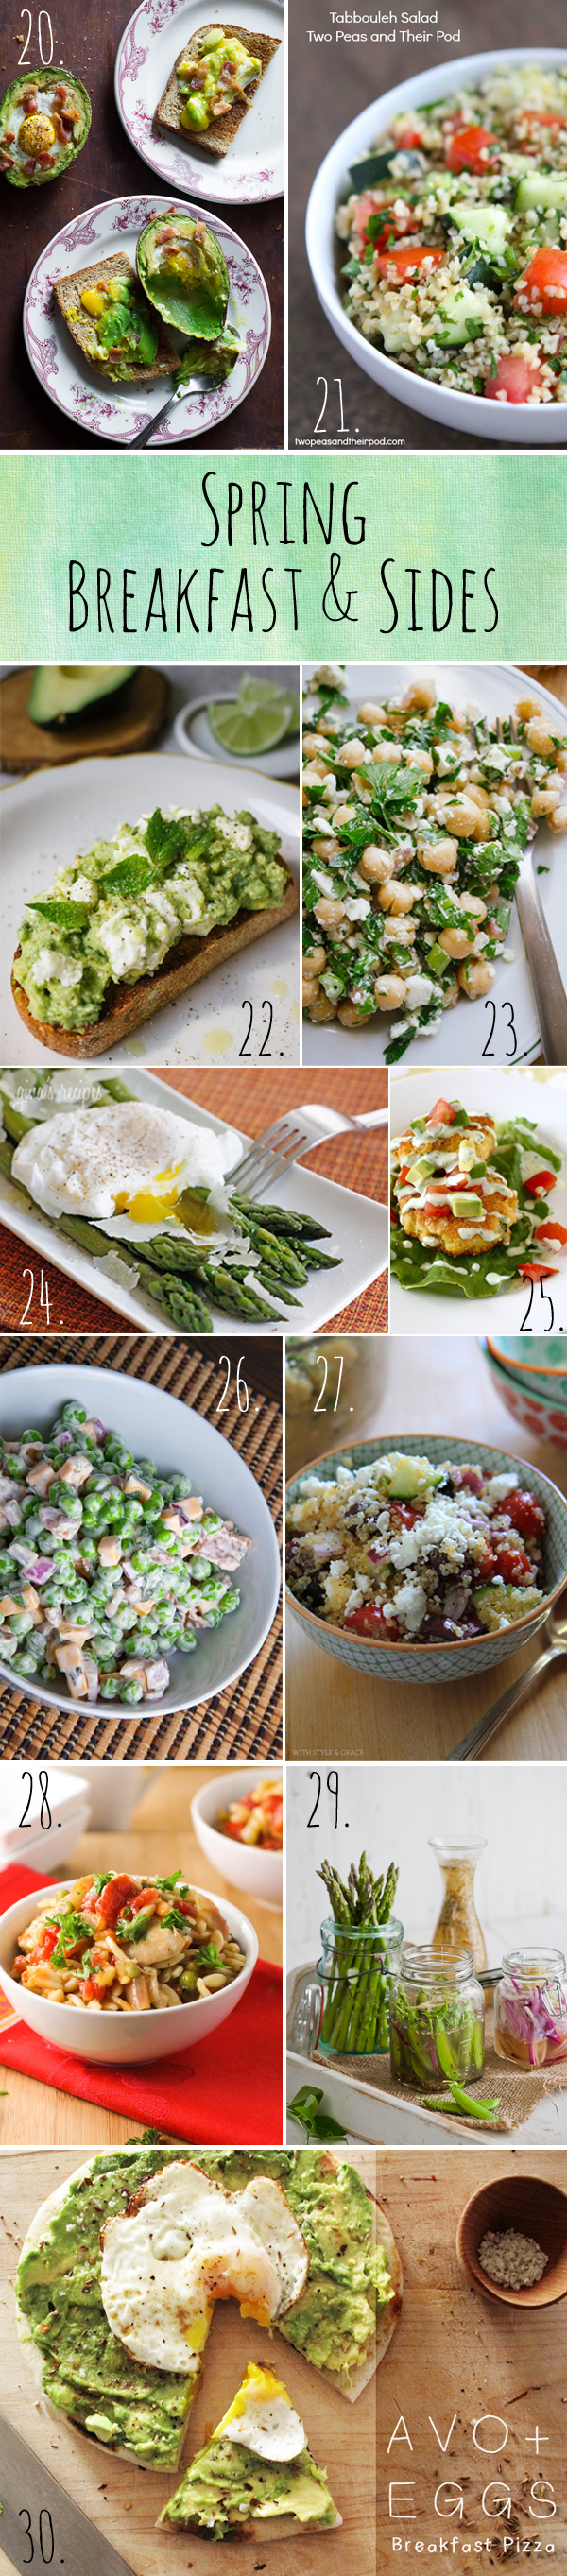 Spring Breakfast & Sides Recipes